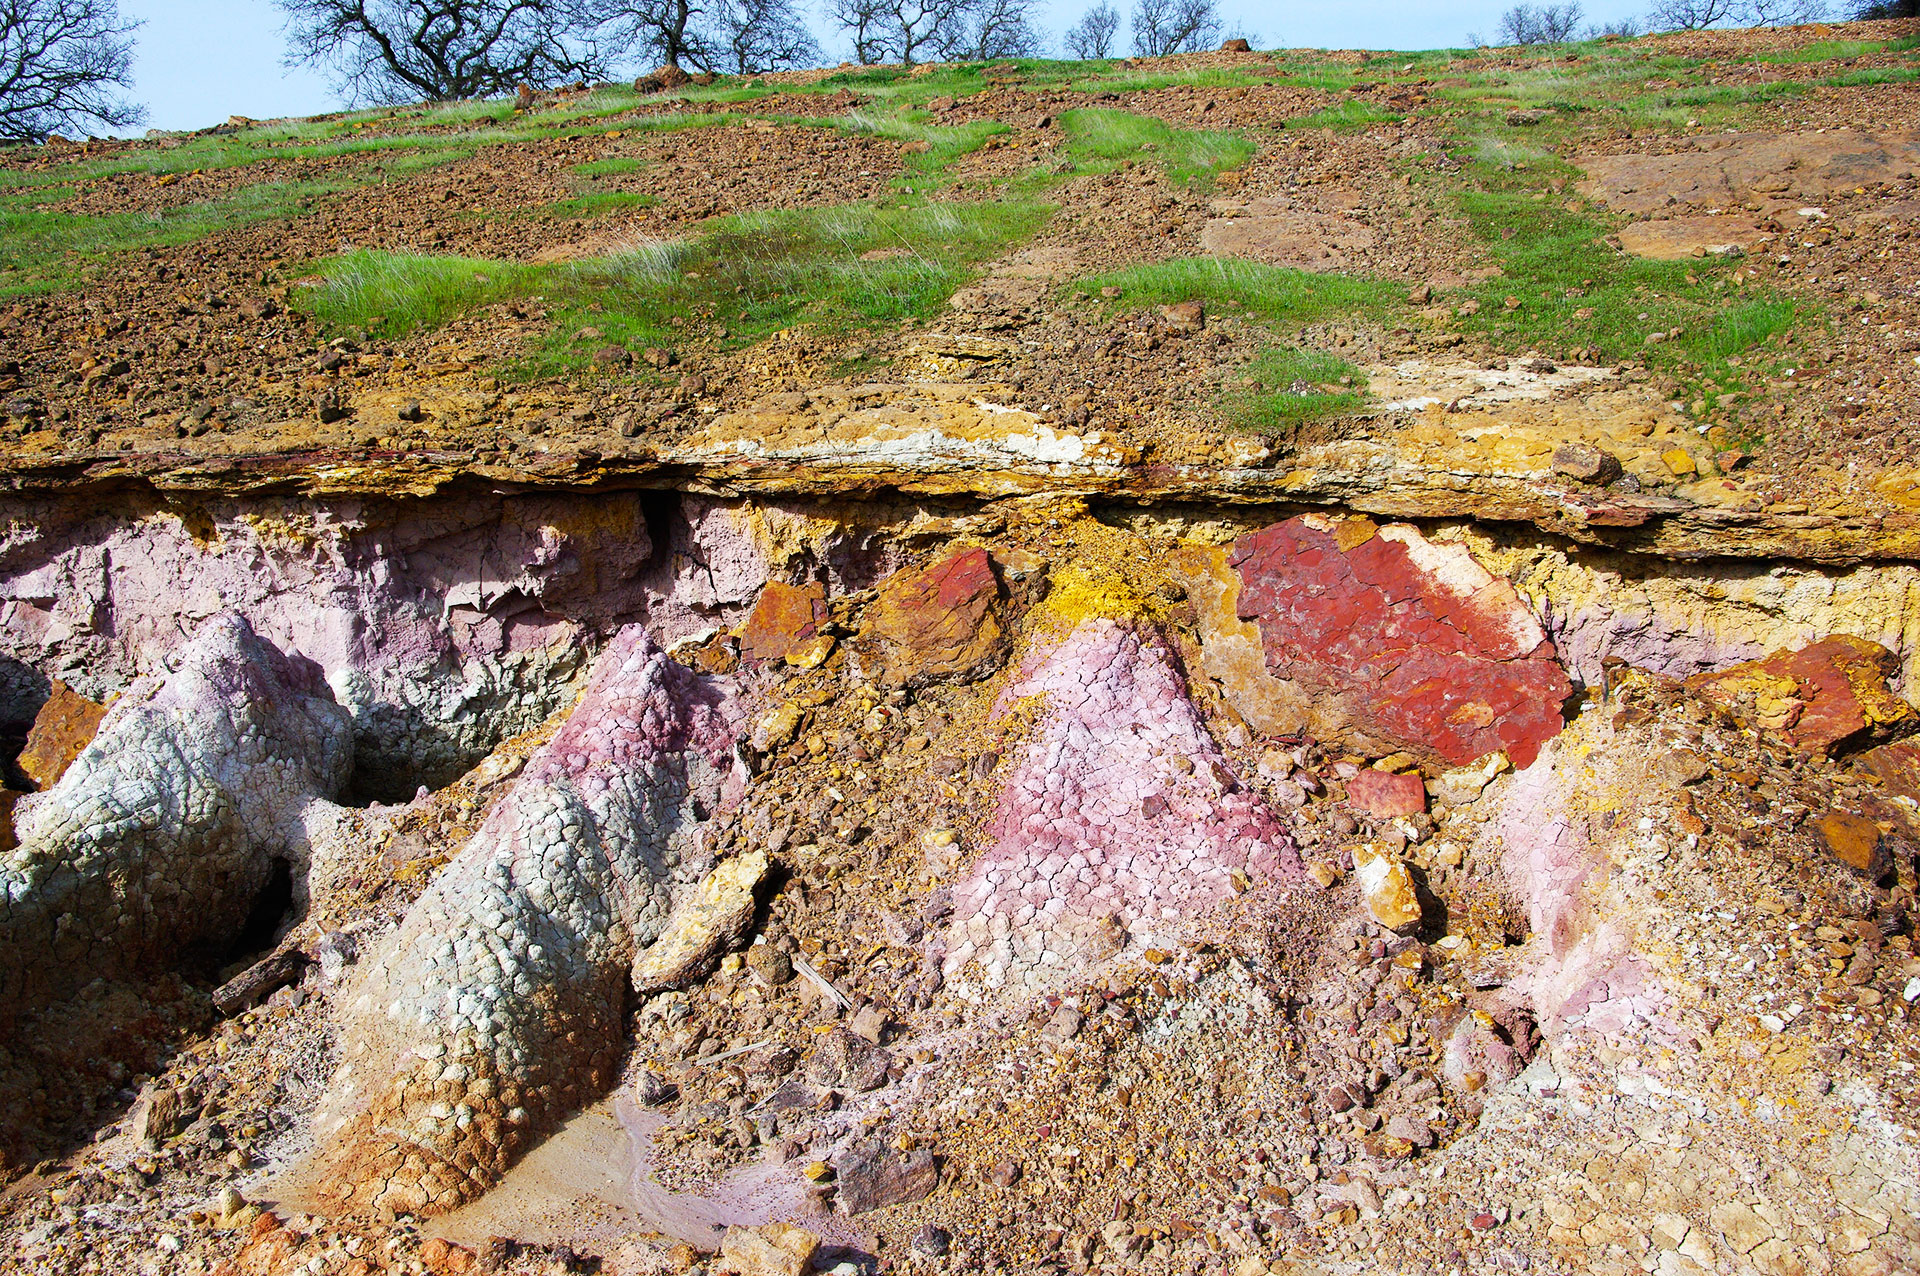 Eocene Ione Formation (laterite- paleosol) formed under tropical- subtropical conditions in Central California 55 million years ago